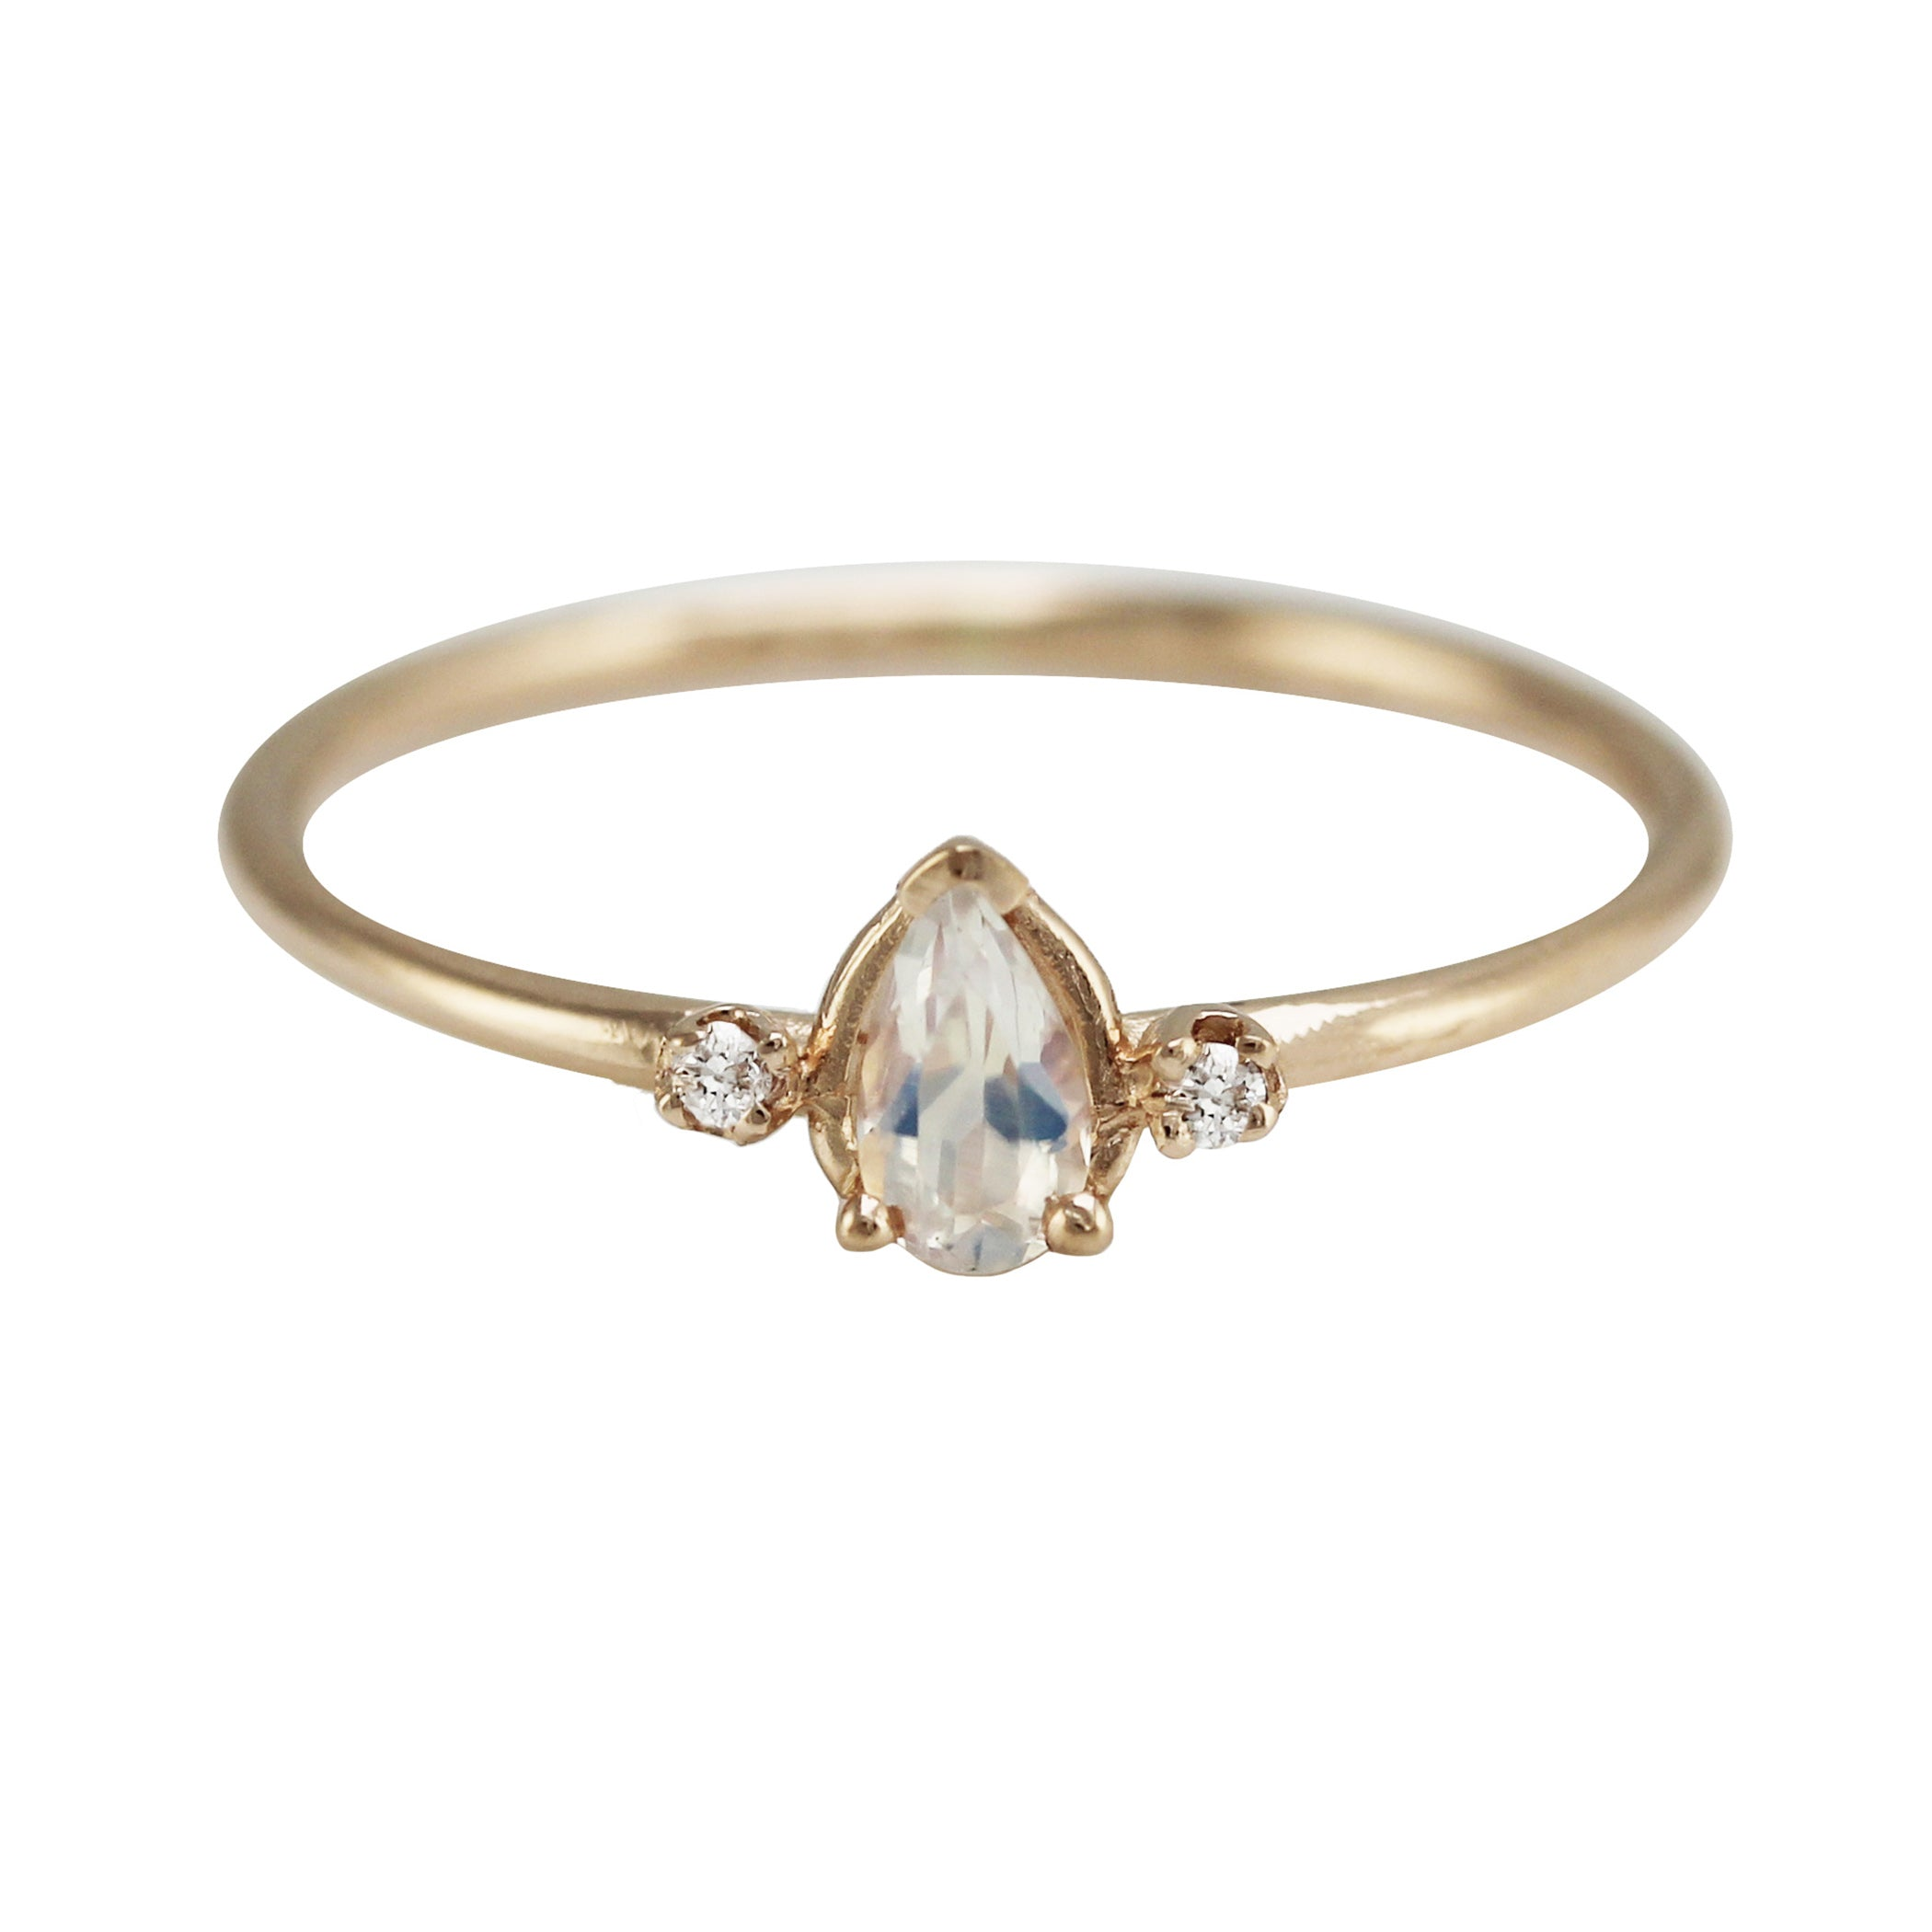 PRINCESS MOONSTONE RING